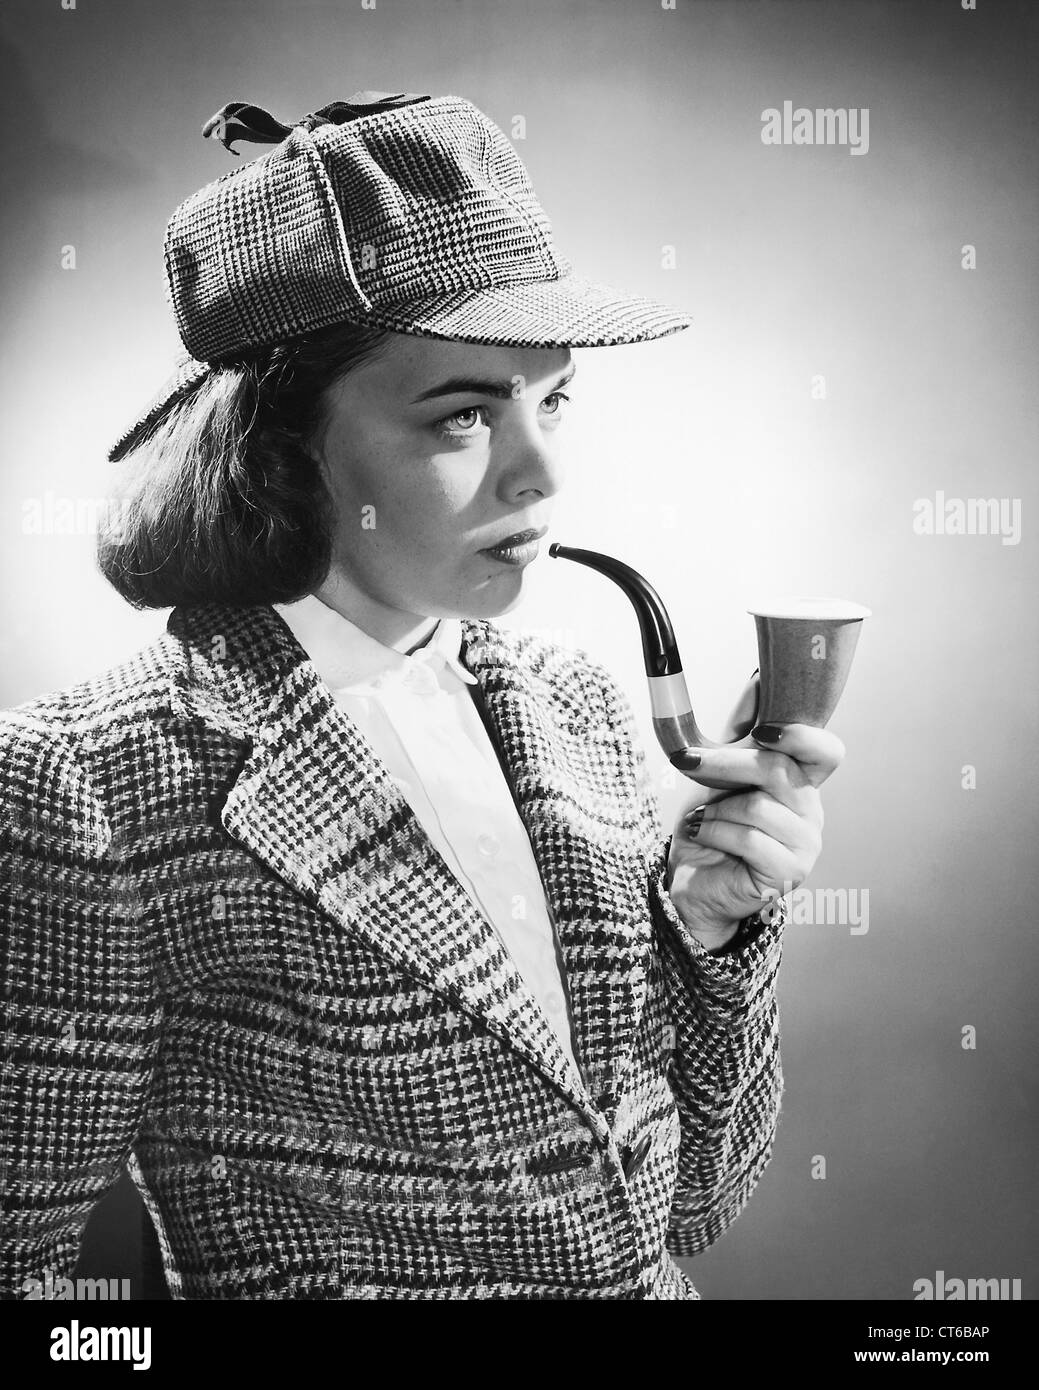 Vintage female Sherlock Holmes detective smoking a pipe and wearing hat - Stock Image